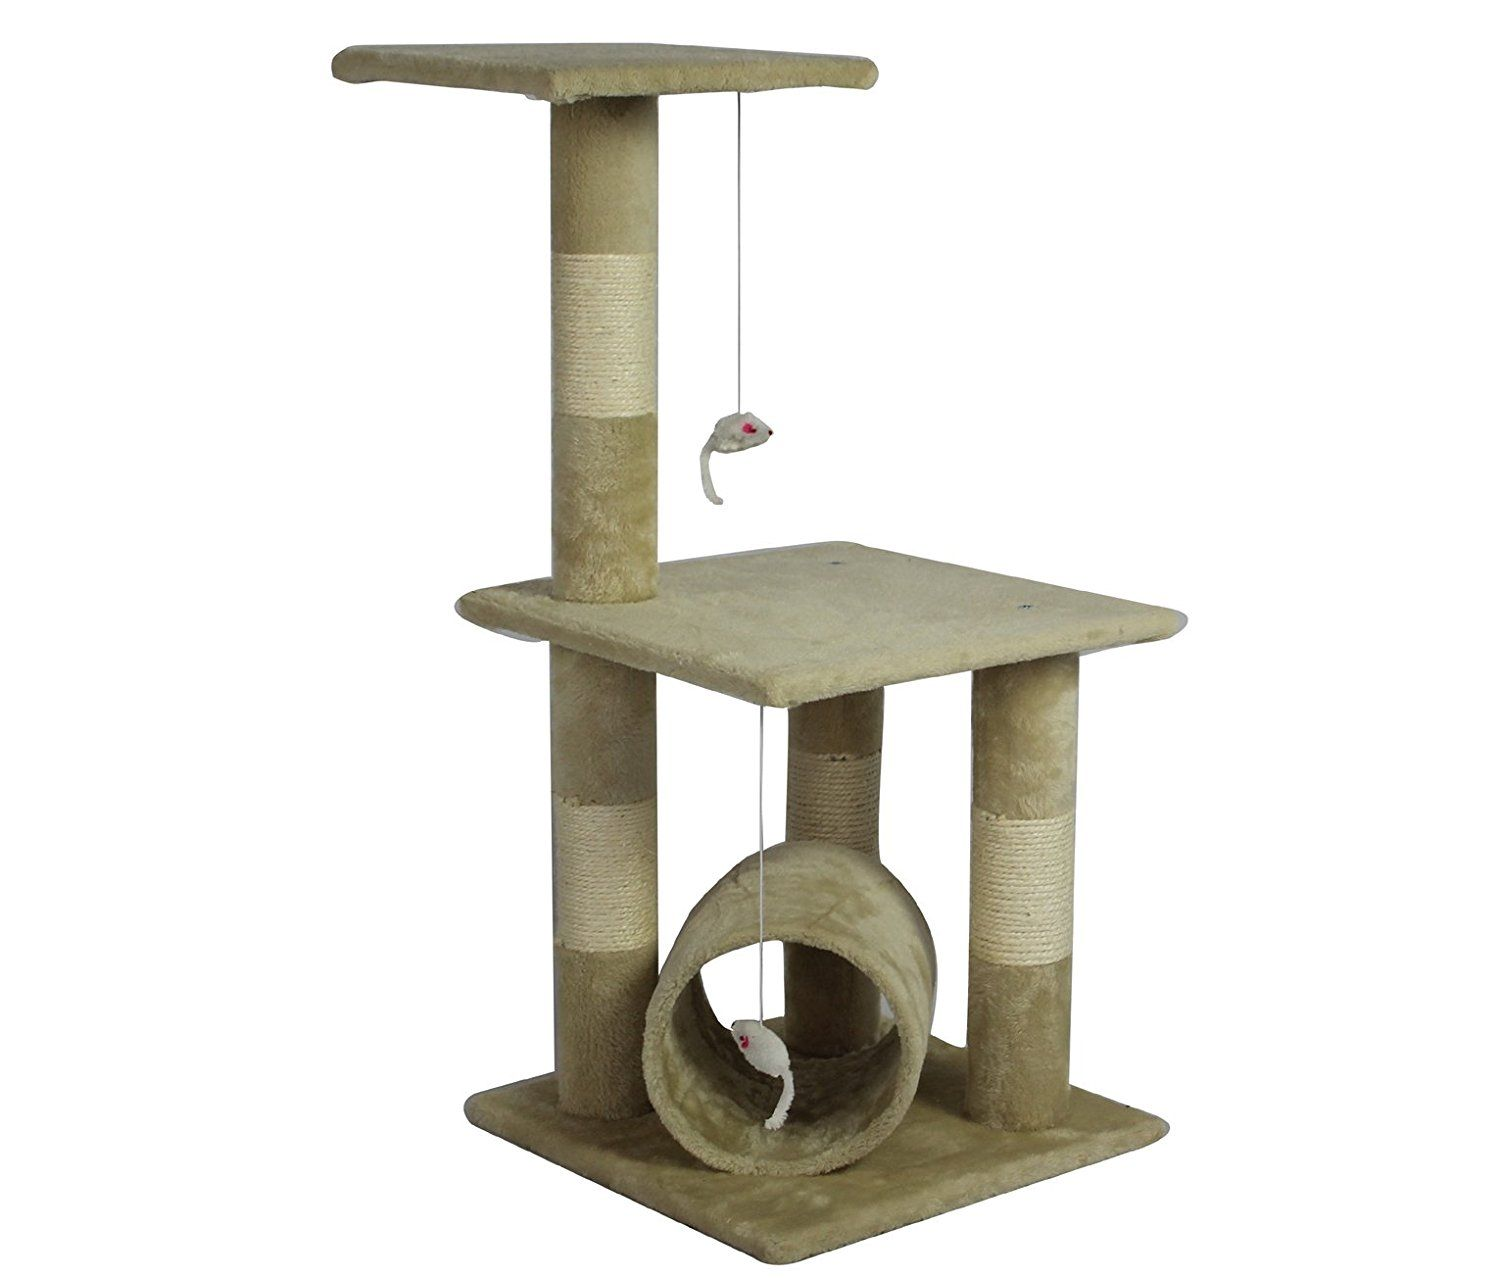 34u0027 Cat Tree Condo Furniture Scratch Post Pet House *** Check This Awesome